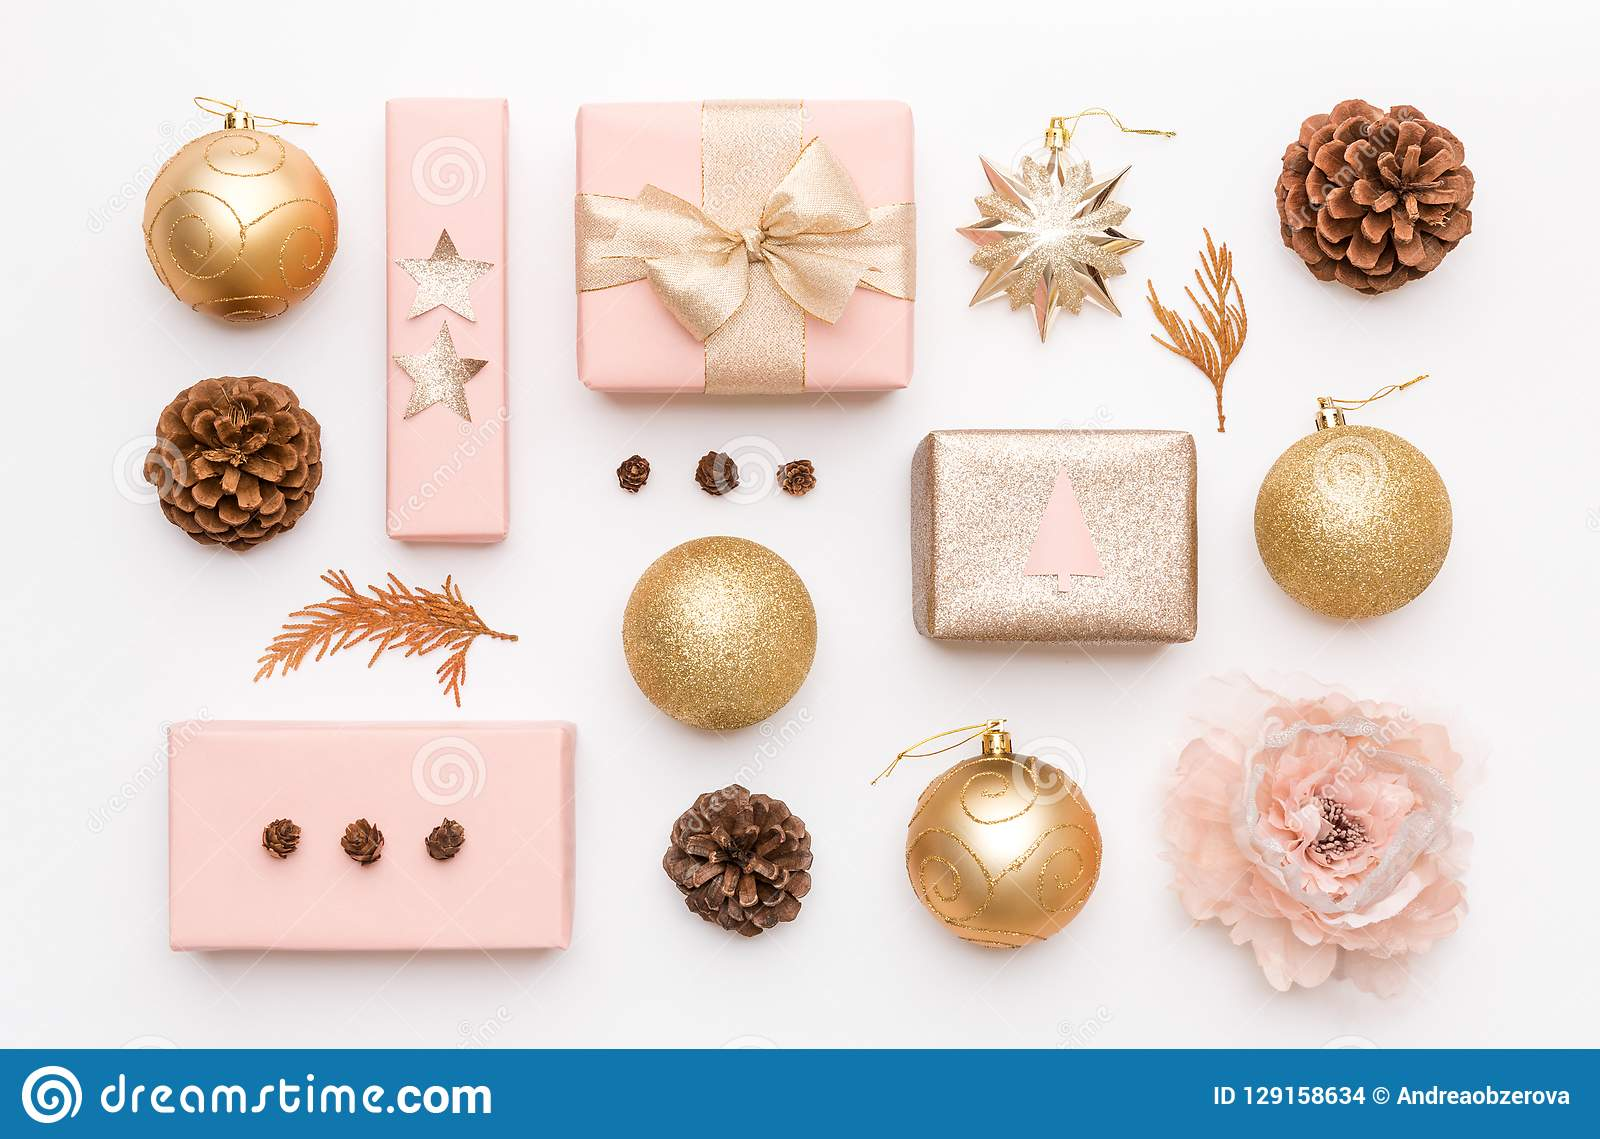 Pink And Gold Christmas Gifts Isolated On White Background Wrapped